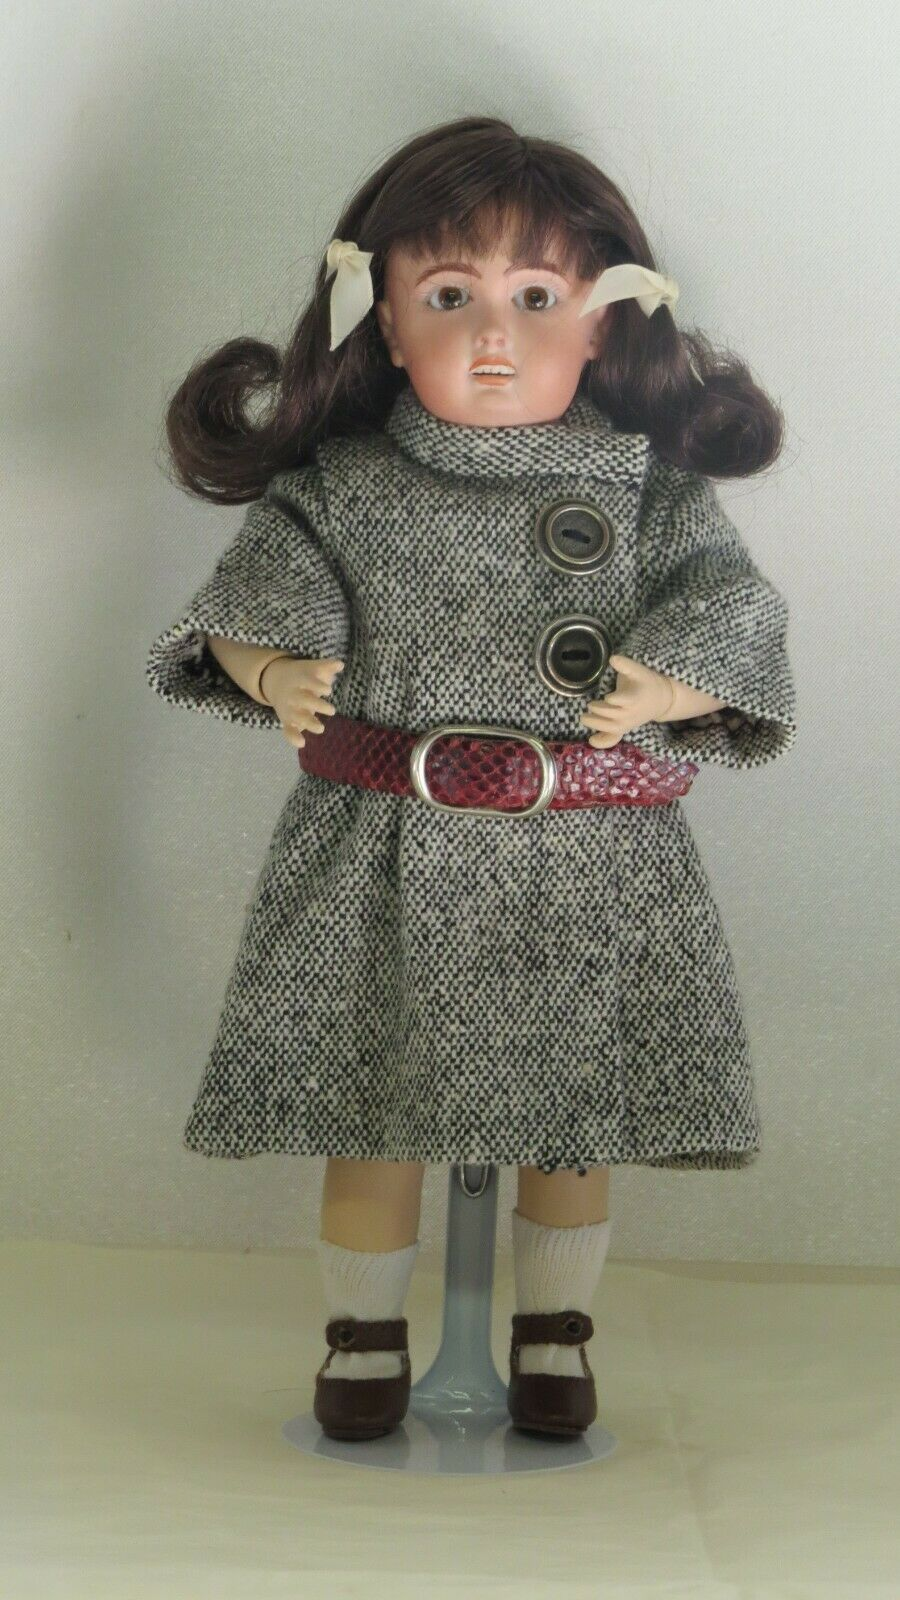 Blauette Jumeau Ref  JC  27 cm  Poupée ancienne  Reproduction  Antique  Doll